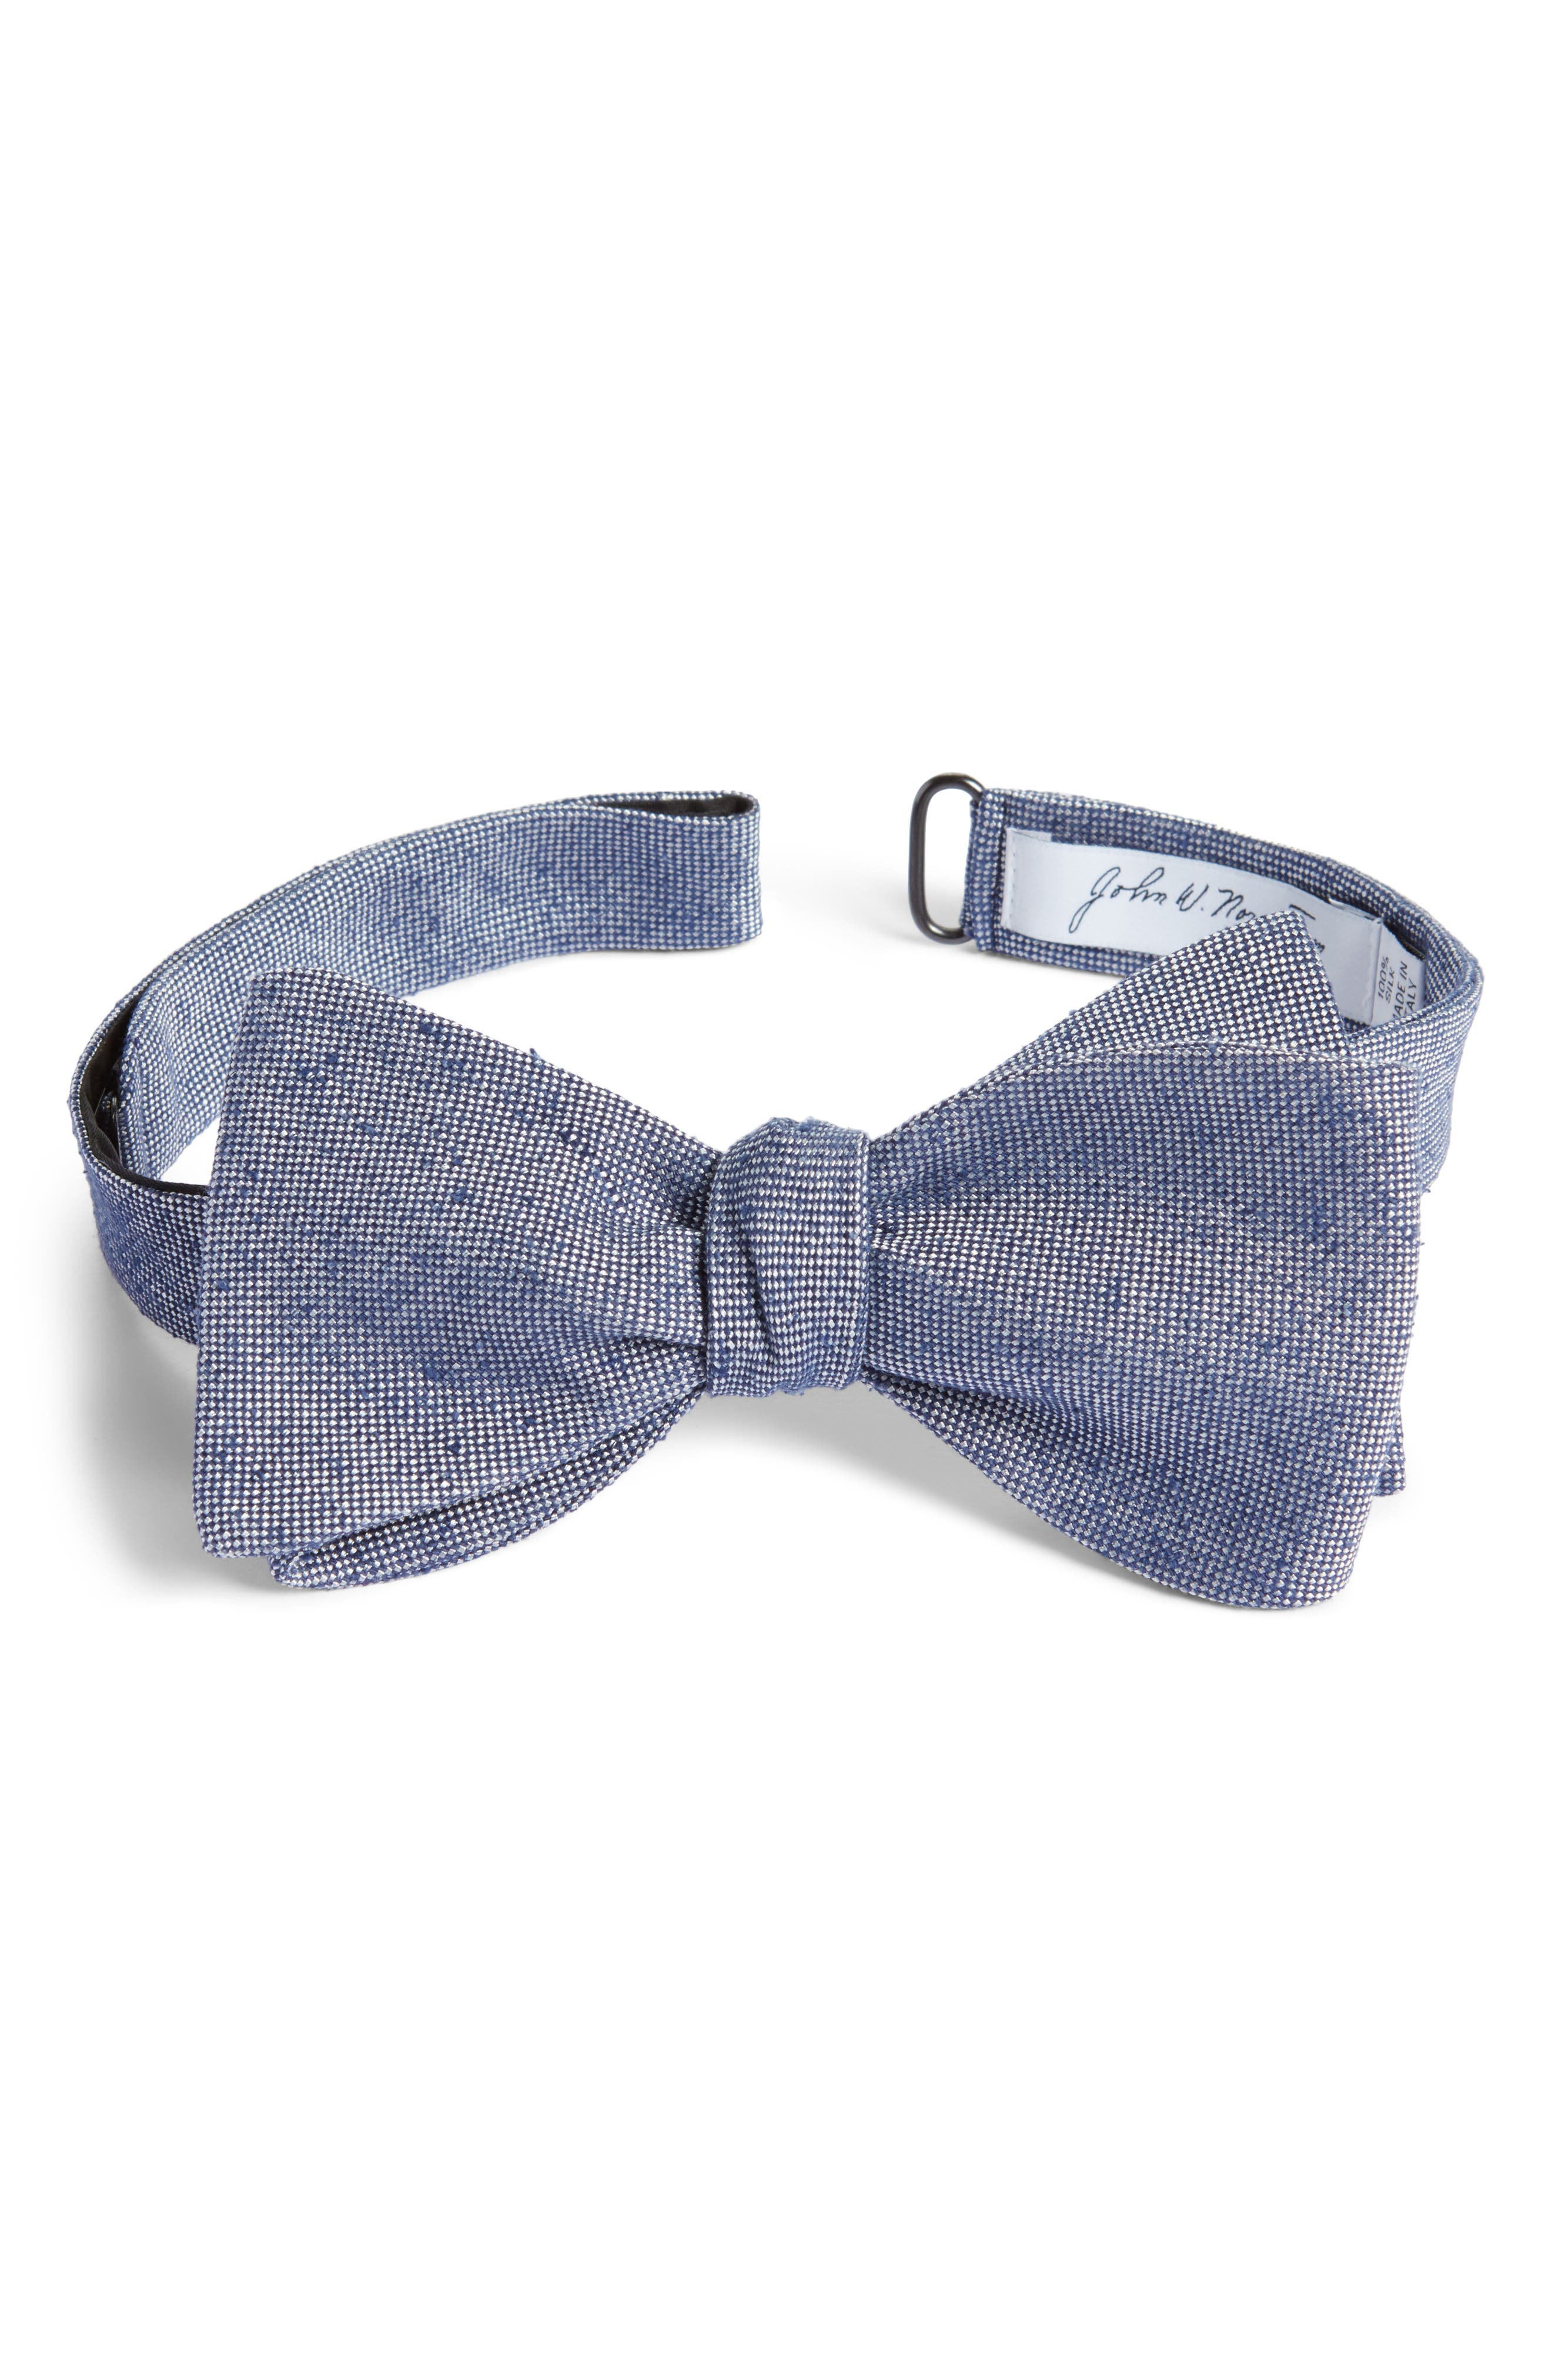 Solid Silk Bow Tie,                             Main thumbnail 1, color,                             Navy